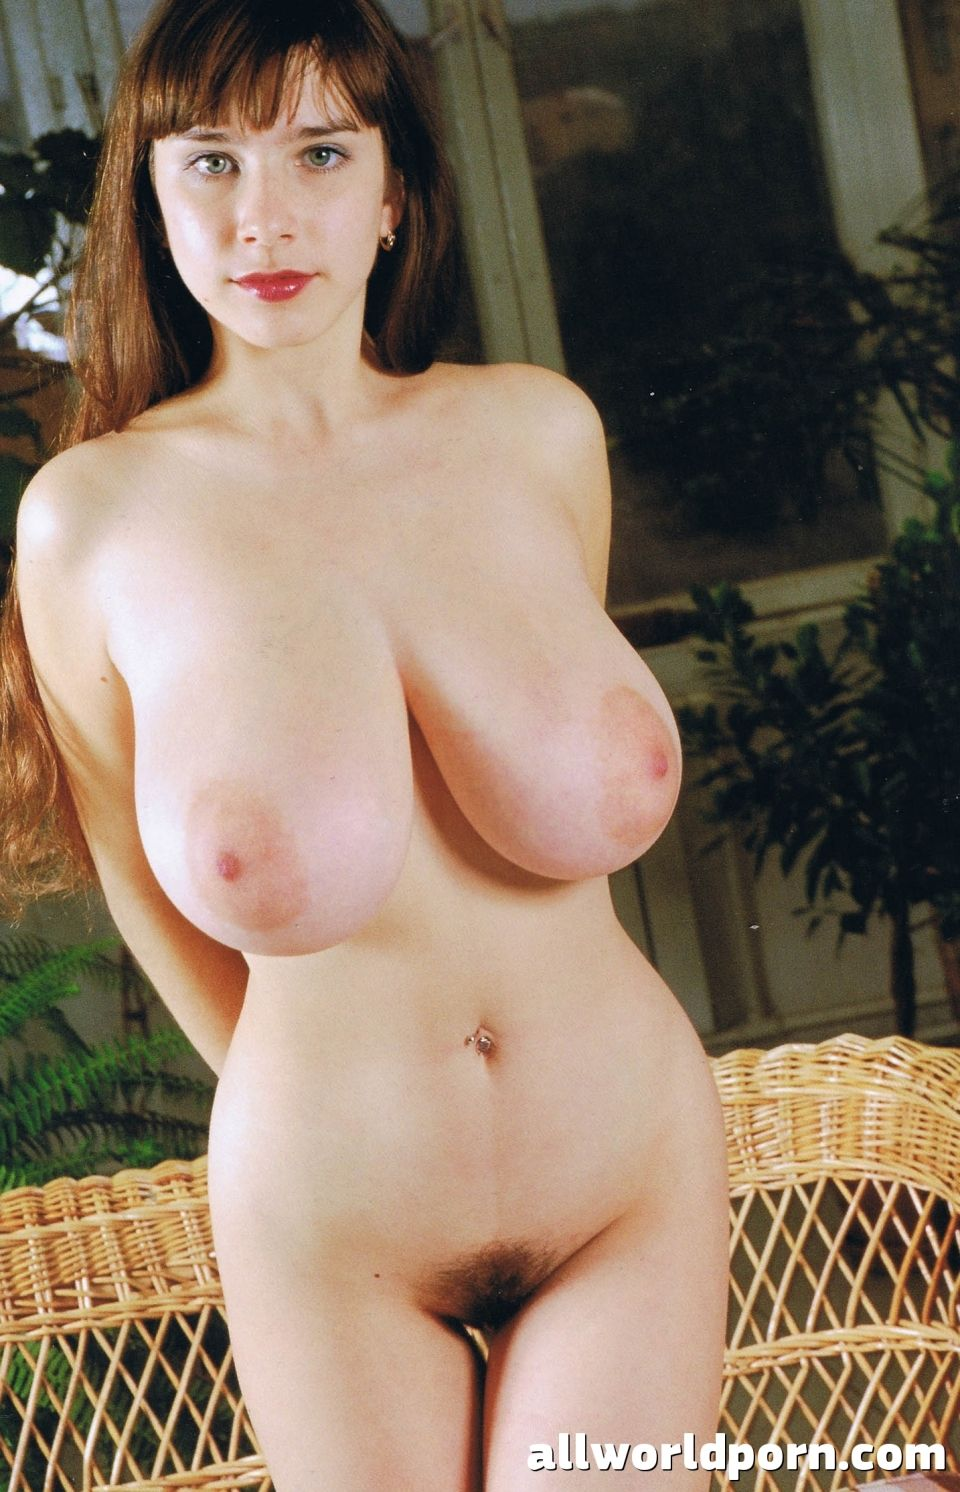 Hotties nude sexy